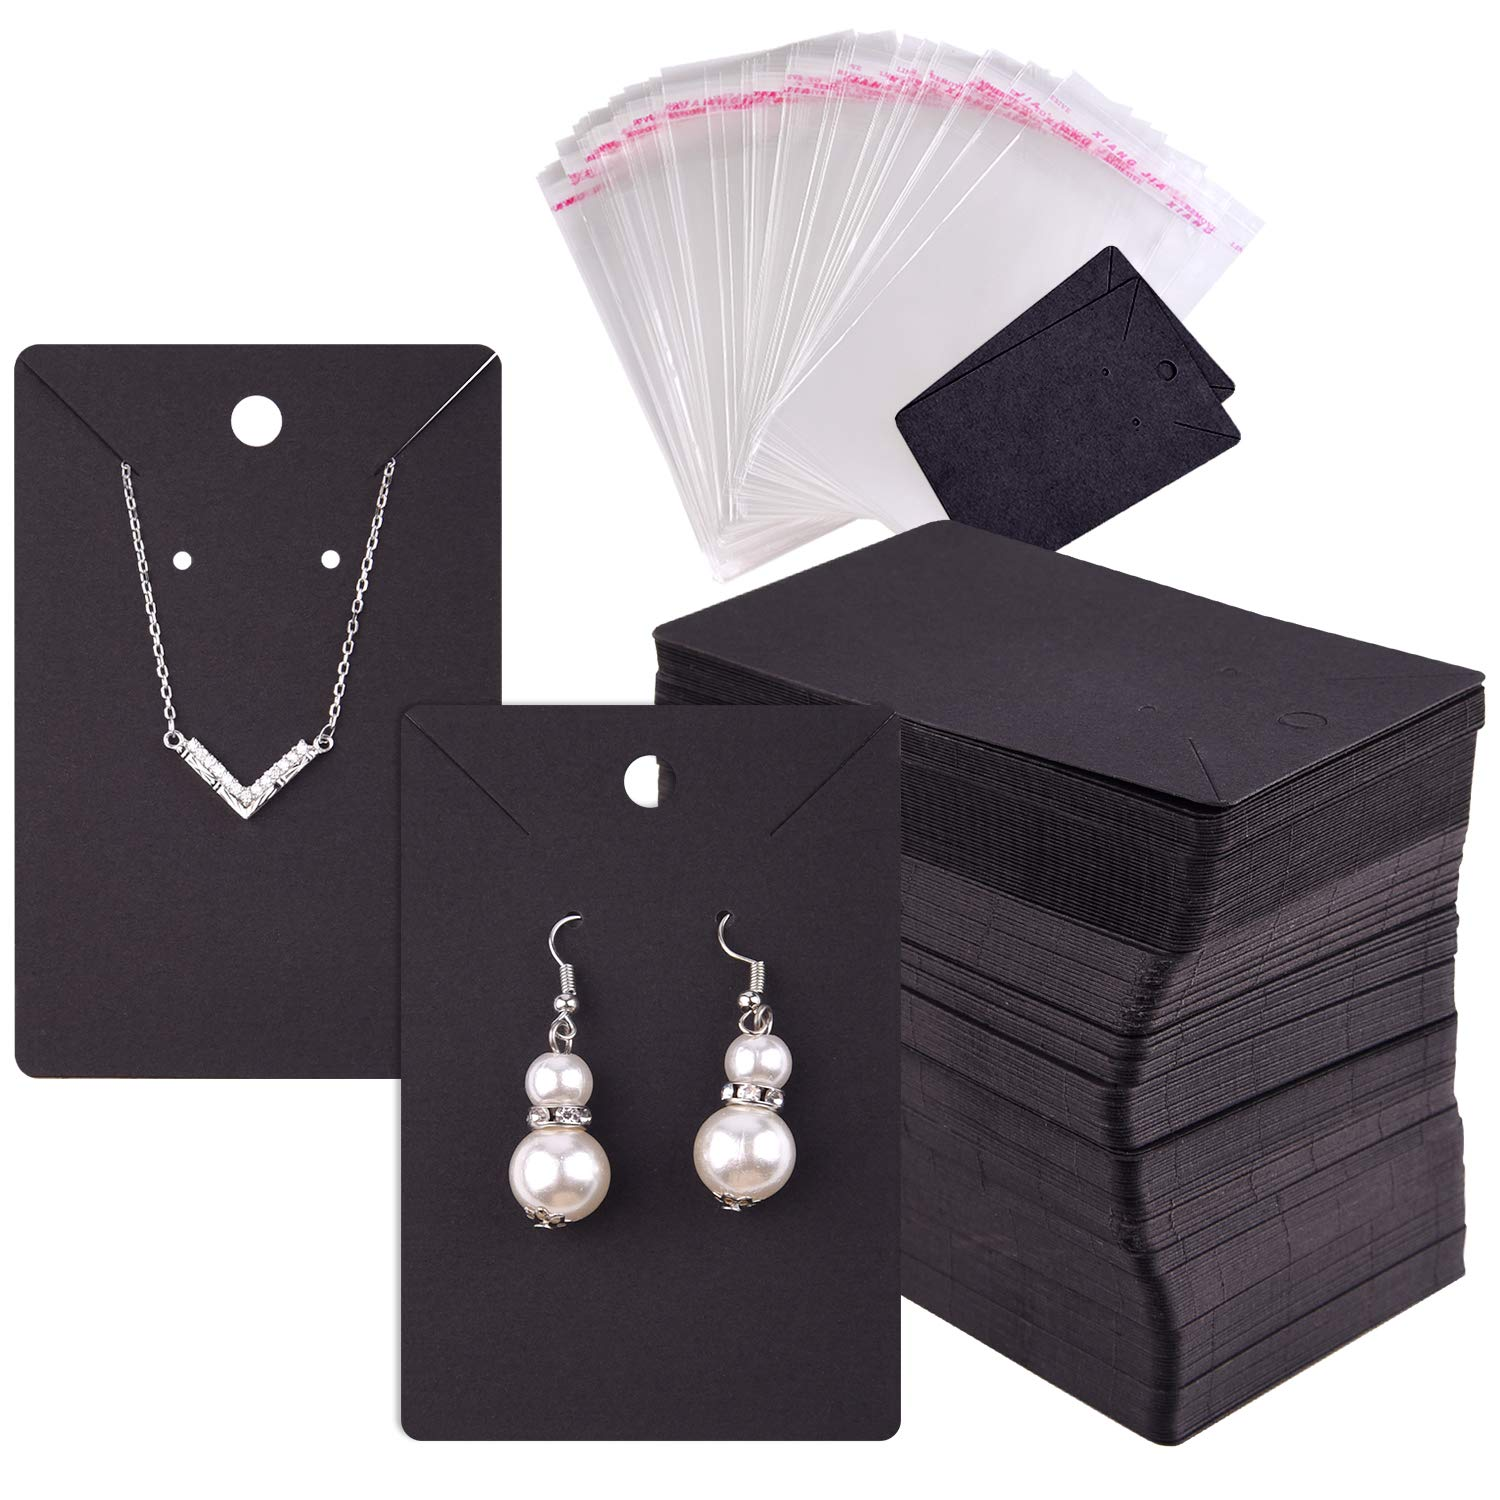 Black TUPARKA 120 Pcs Earring Display Card Necklace Display Cards with120Pcs Self-Seal Bags,Earring Card Holder Blank Kraft Paper Tags for DIY Ear Studs and Earrings,3.5 x 2 Inches